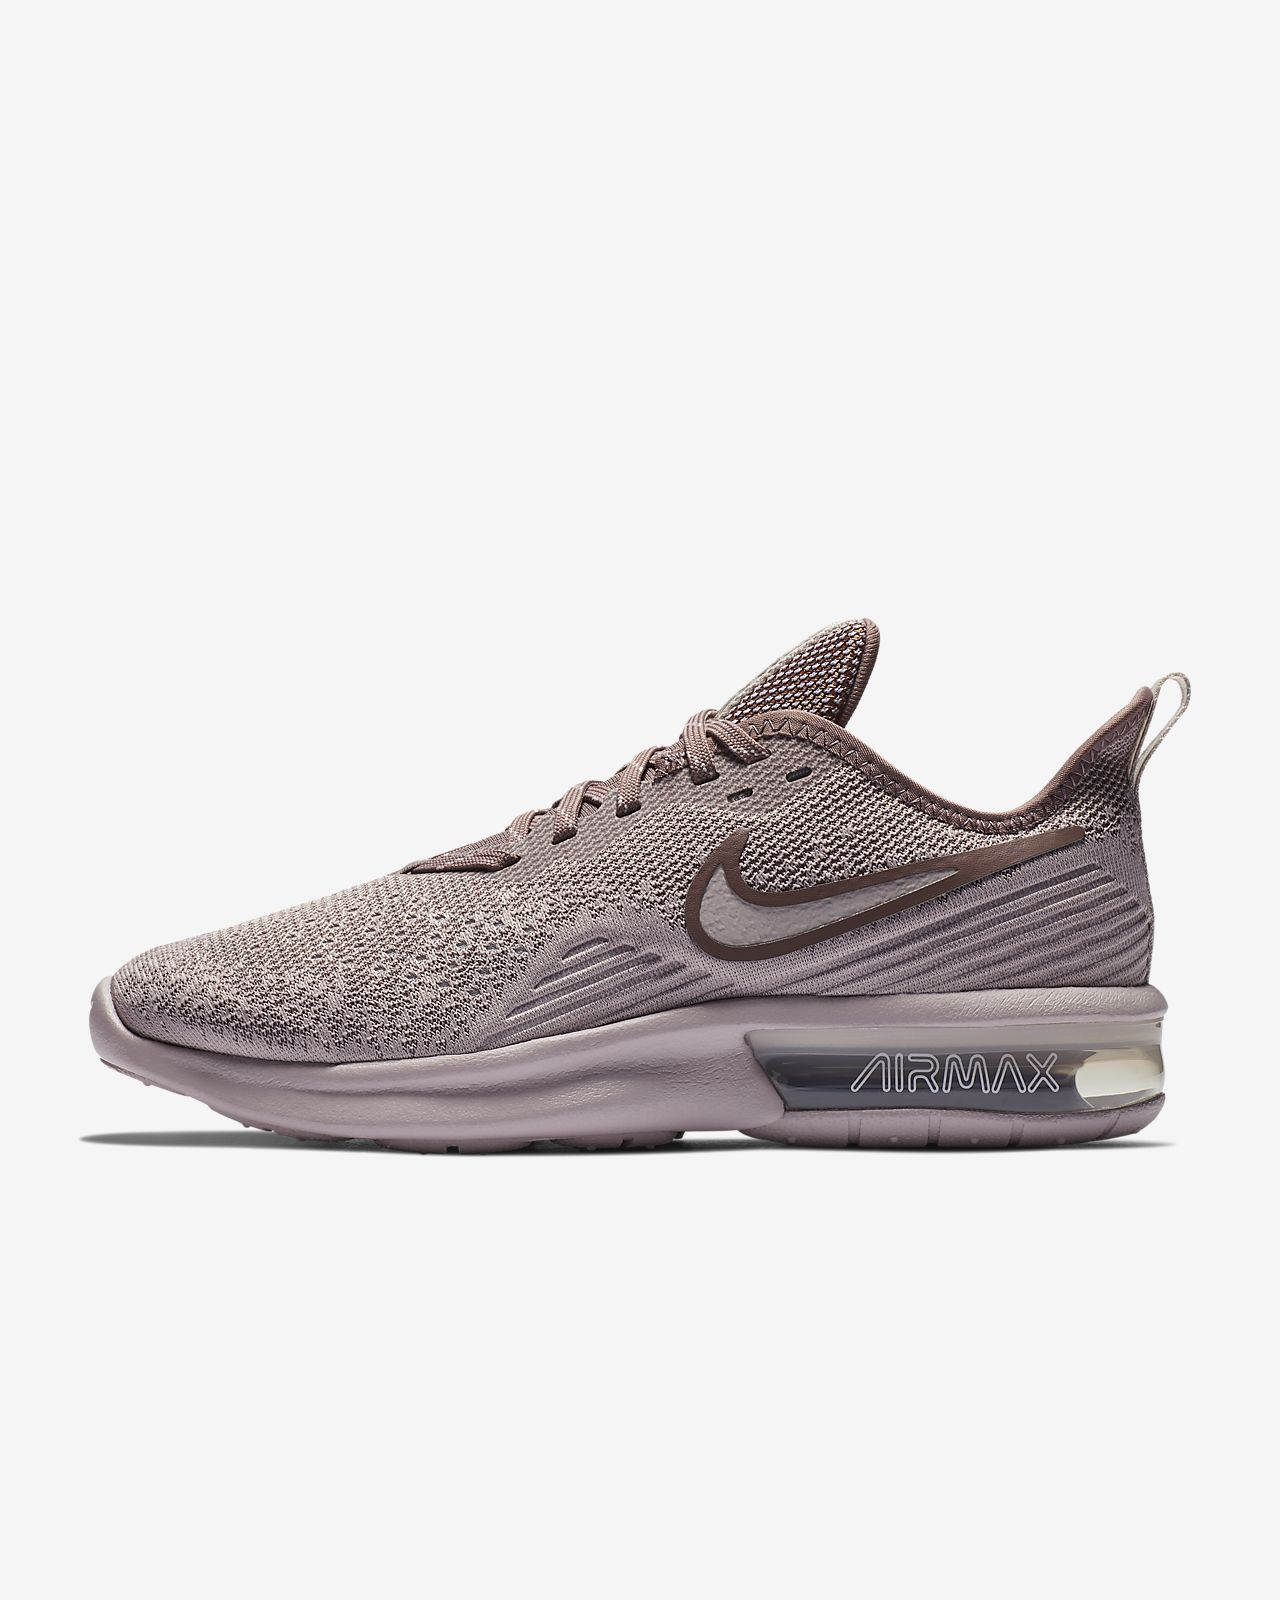 25978ffadcc440 Nike Air Max Sequent 4 Women s Shoe. Nike.com NL